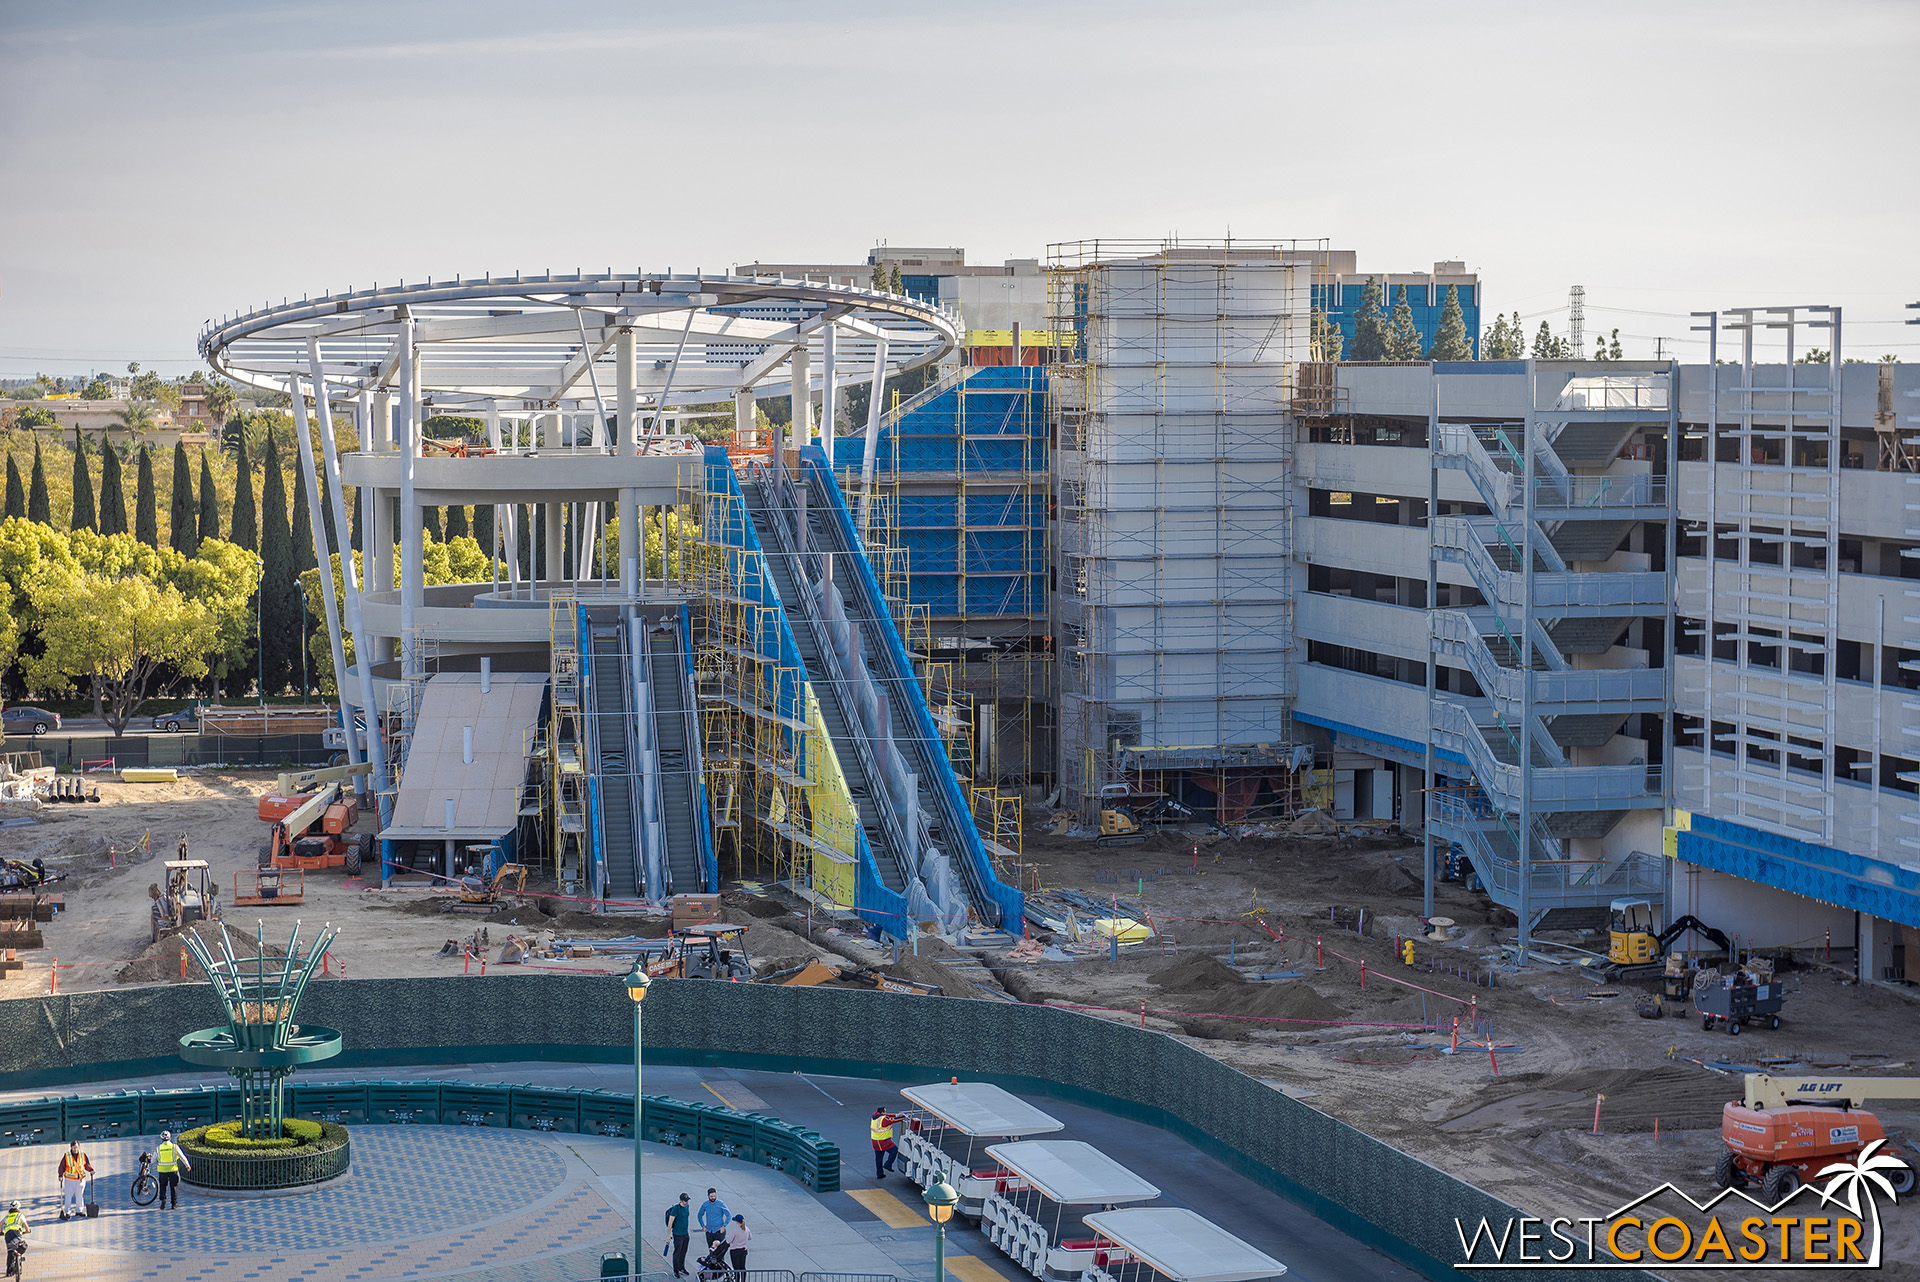 And over the past couple of weeks, they also hoisted the big canopy to the top of the escalator promenade!